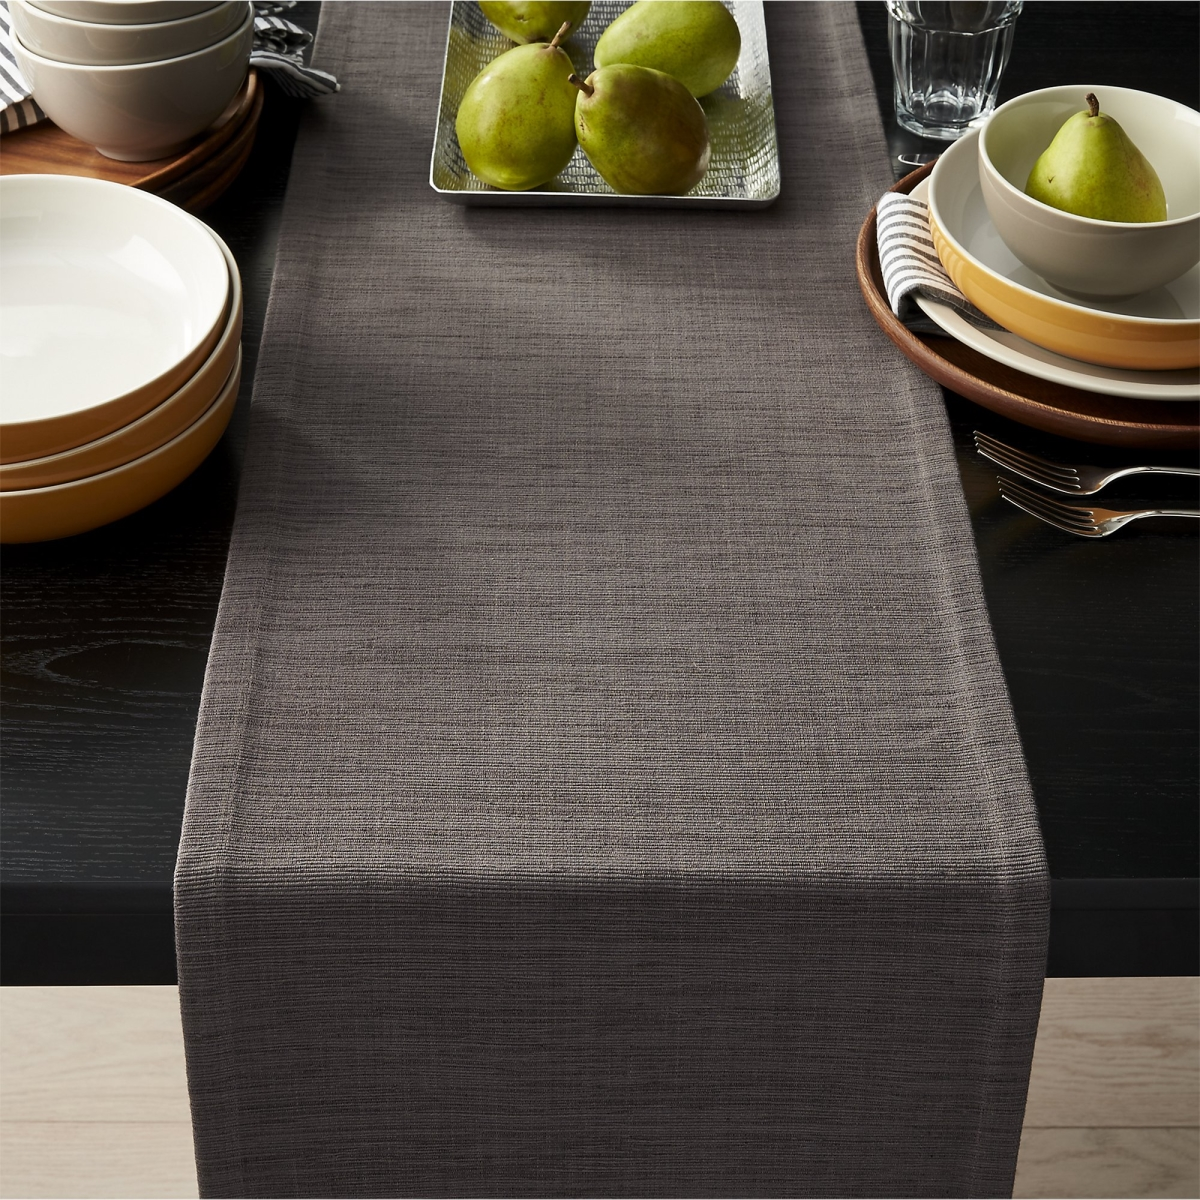 table runner The Finest Table Runners for your Dining Table Deep grey table runner